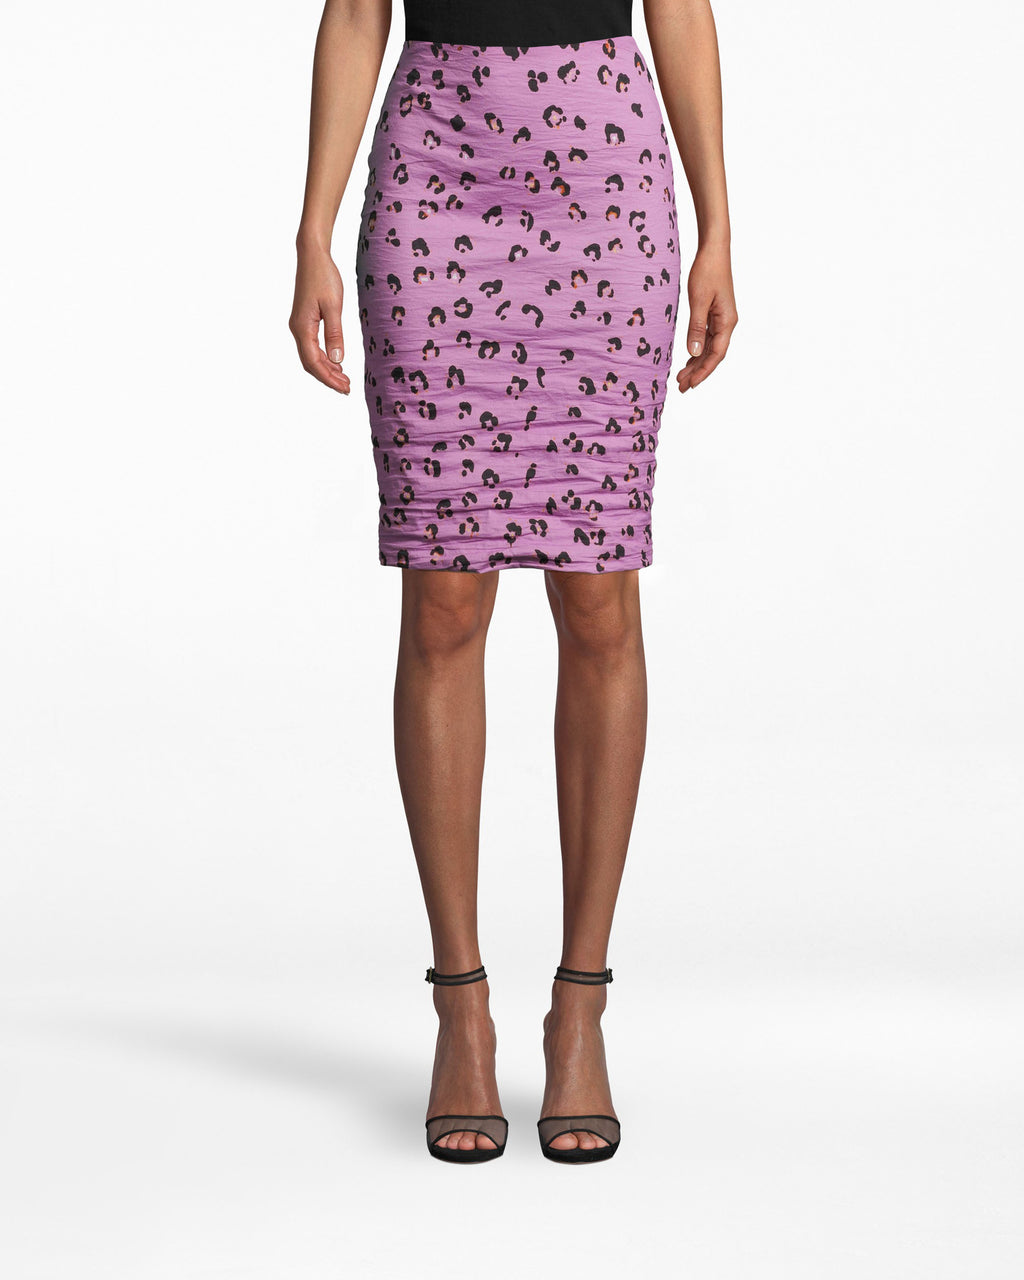 BH10514 - Sandy Lilac Leopard Skirt - bottoms - skirts - OUR BEST SELLING SANDY SKIRT - UPGRADED IN OUR LILAC LEOPARD PRINT. THIS STATEMENT PIECE IS PERFECT FOR BOTH GNO'S AND THE OFFICE. FEATURING SLIMMING GATHERING OF THE FABRIC AND A BACK ZIPPER FOR CLOSURE. Add 1 line break STYLIST TIP: WEAR WITH A SIMPLE BLACK TOP AND HEELS.